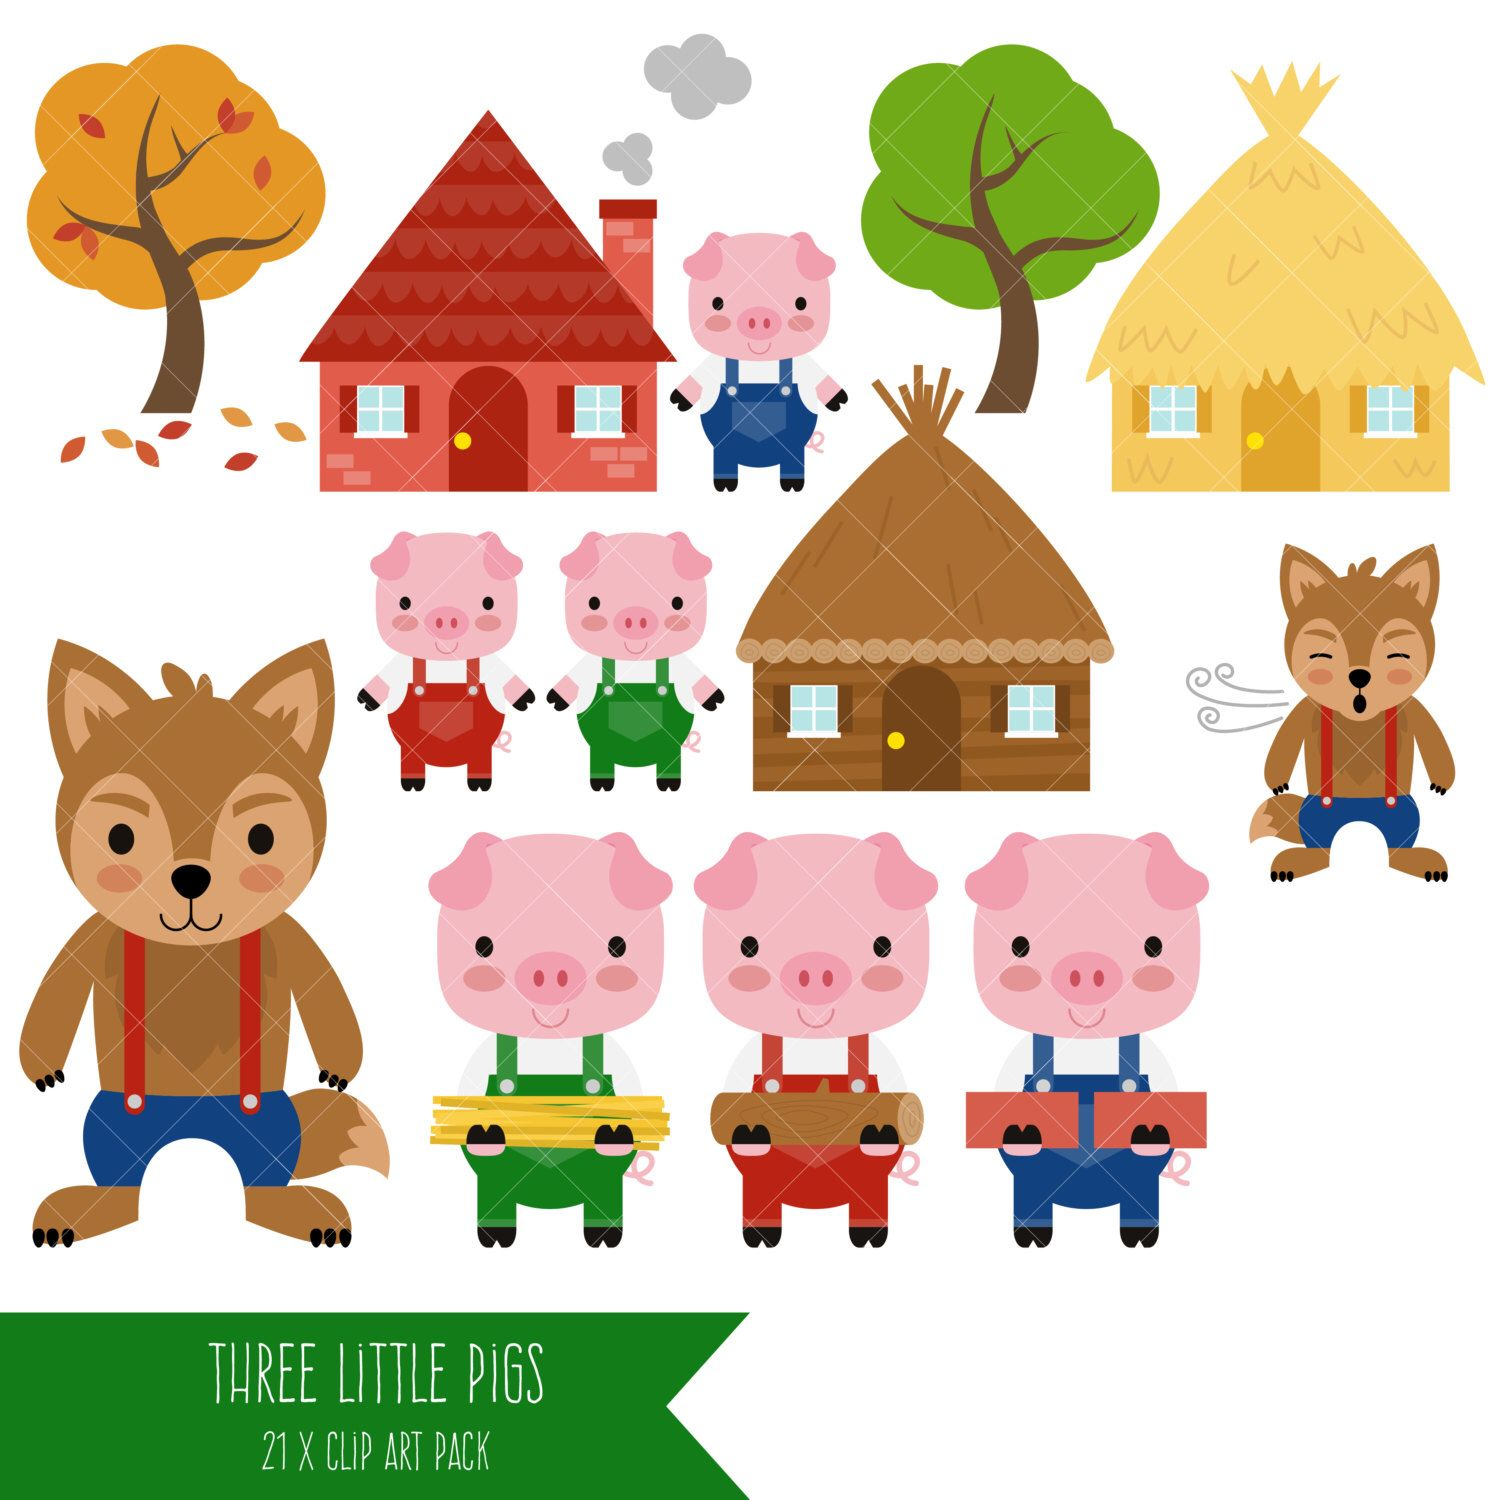 Three Little Pigs Clipart Big Bad Wolf Clip Art Com